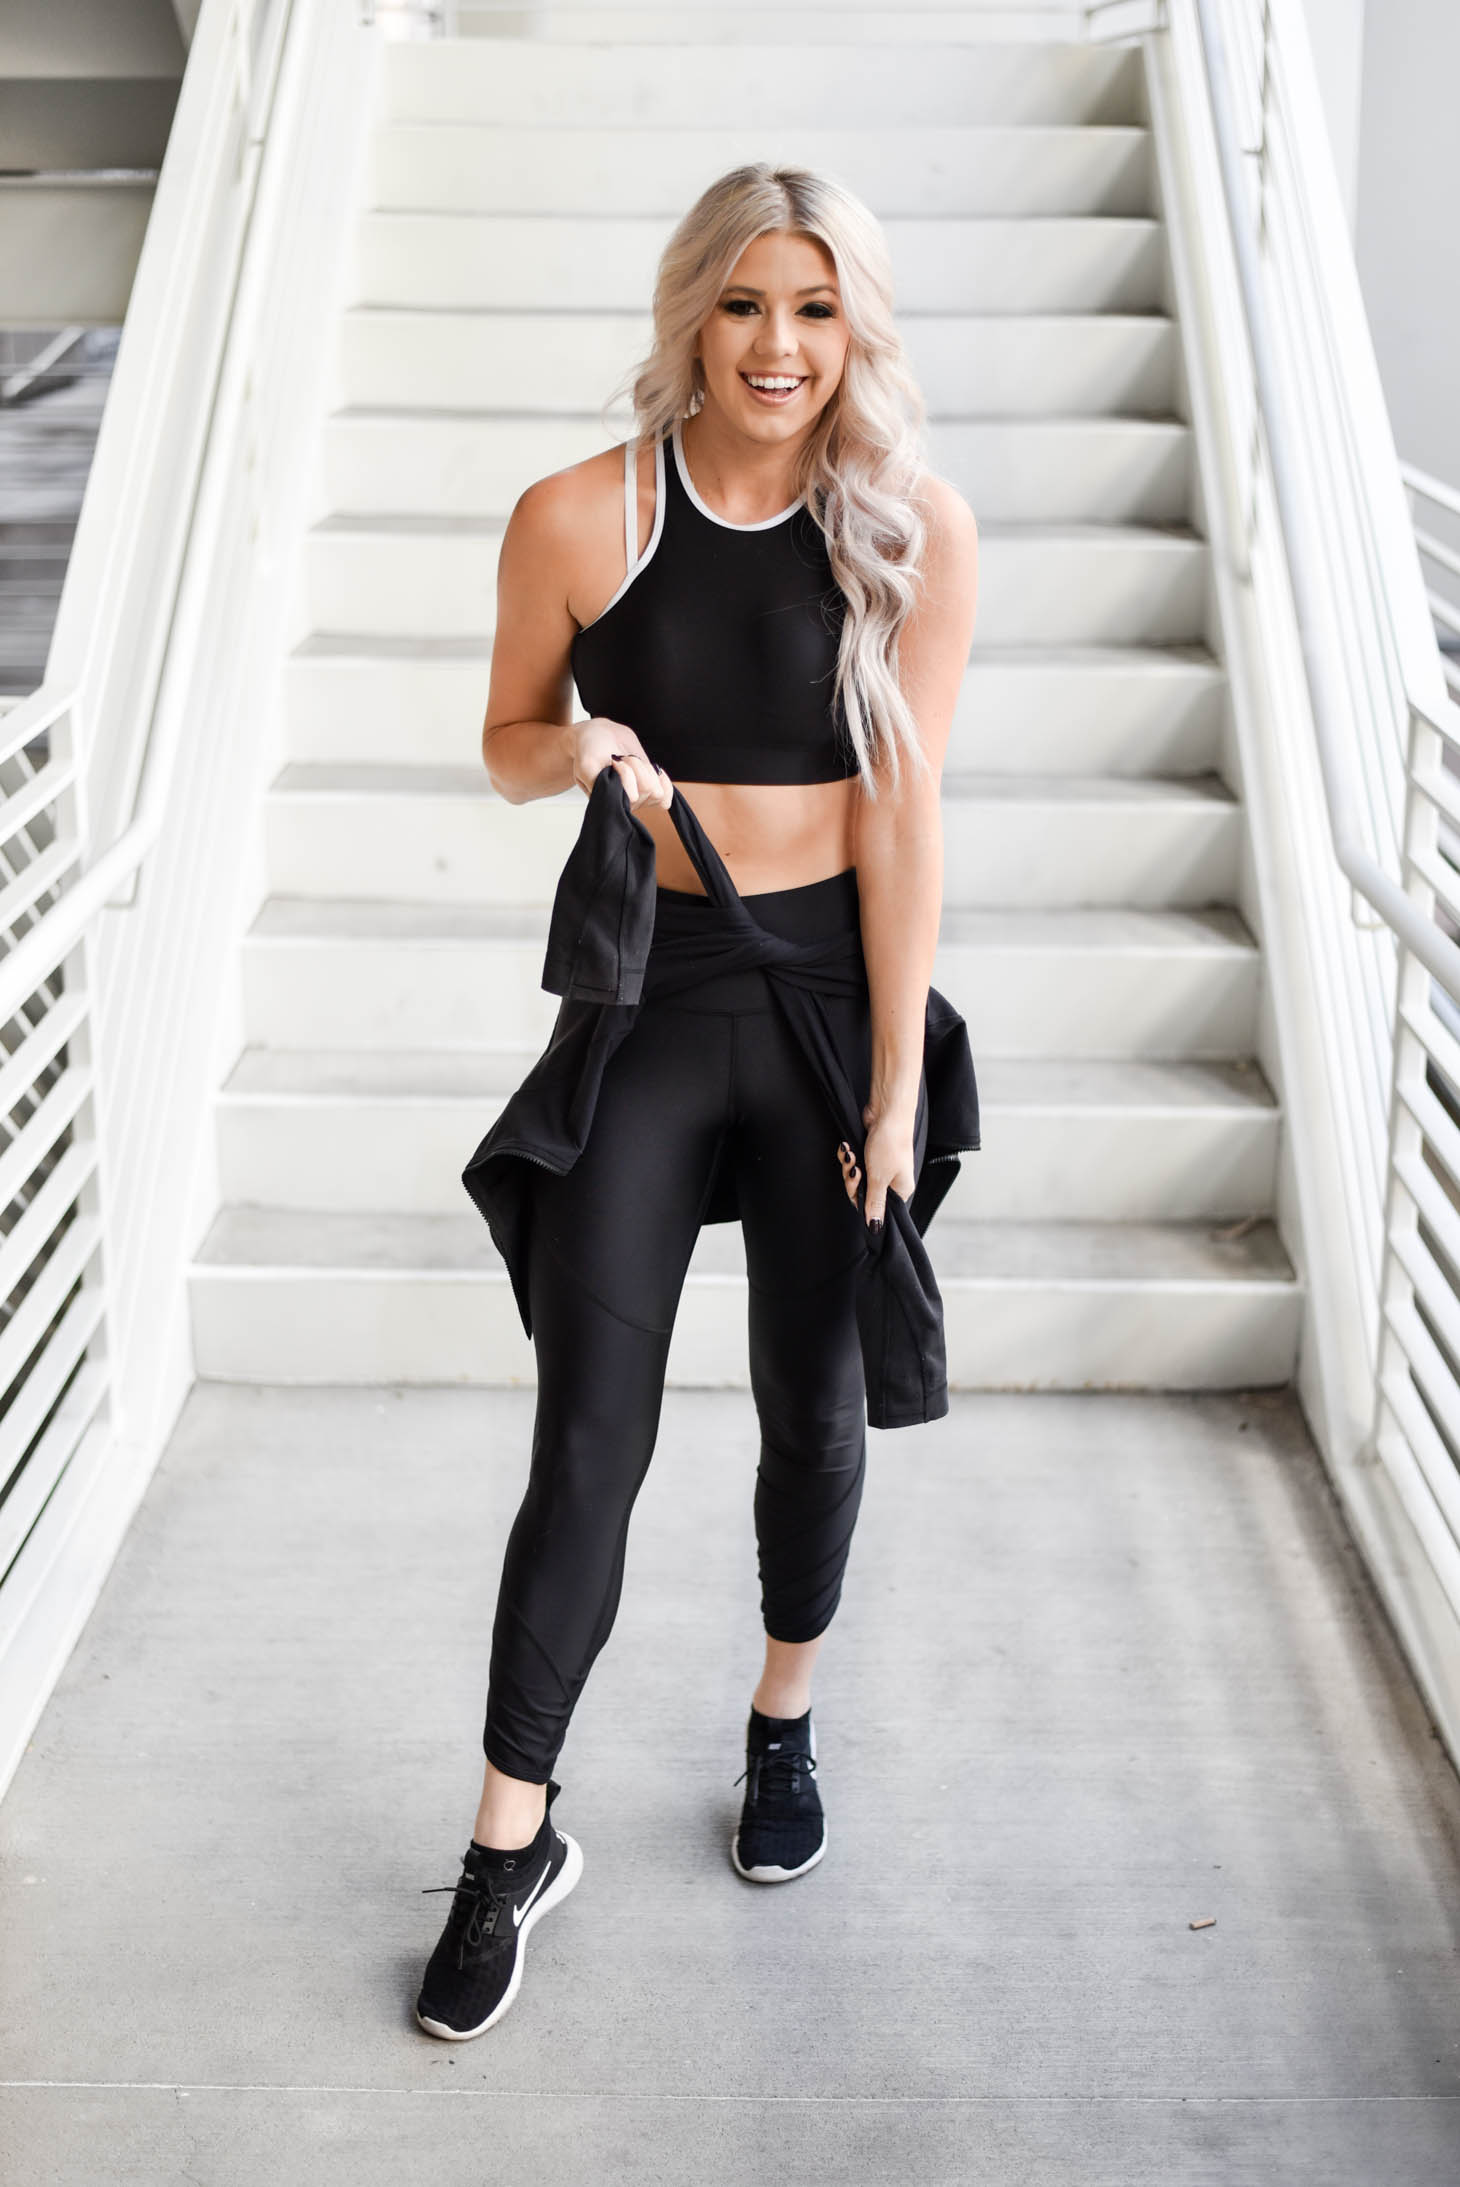 Erin Elizabeth of Wink and a Twirl shares the perfect workout Under Armour set to gift the fitness lovers in your life